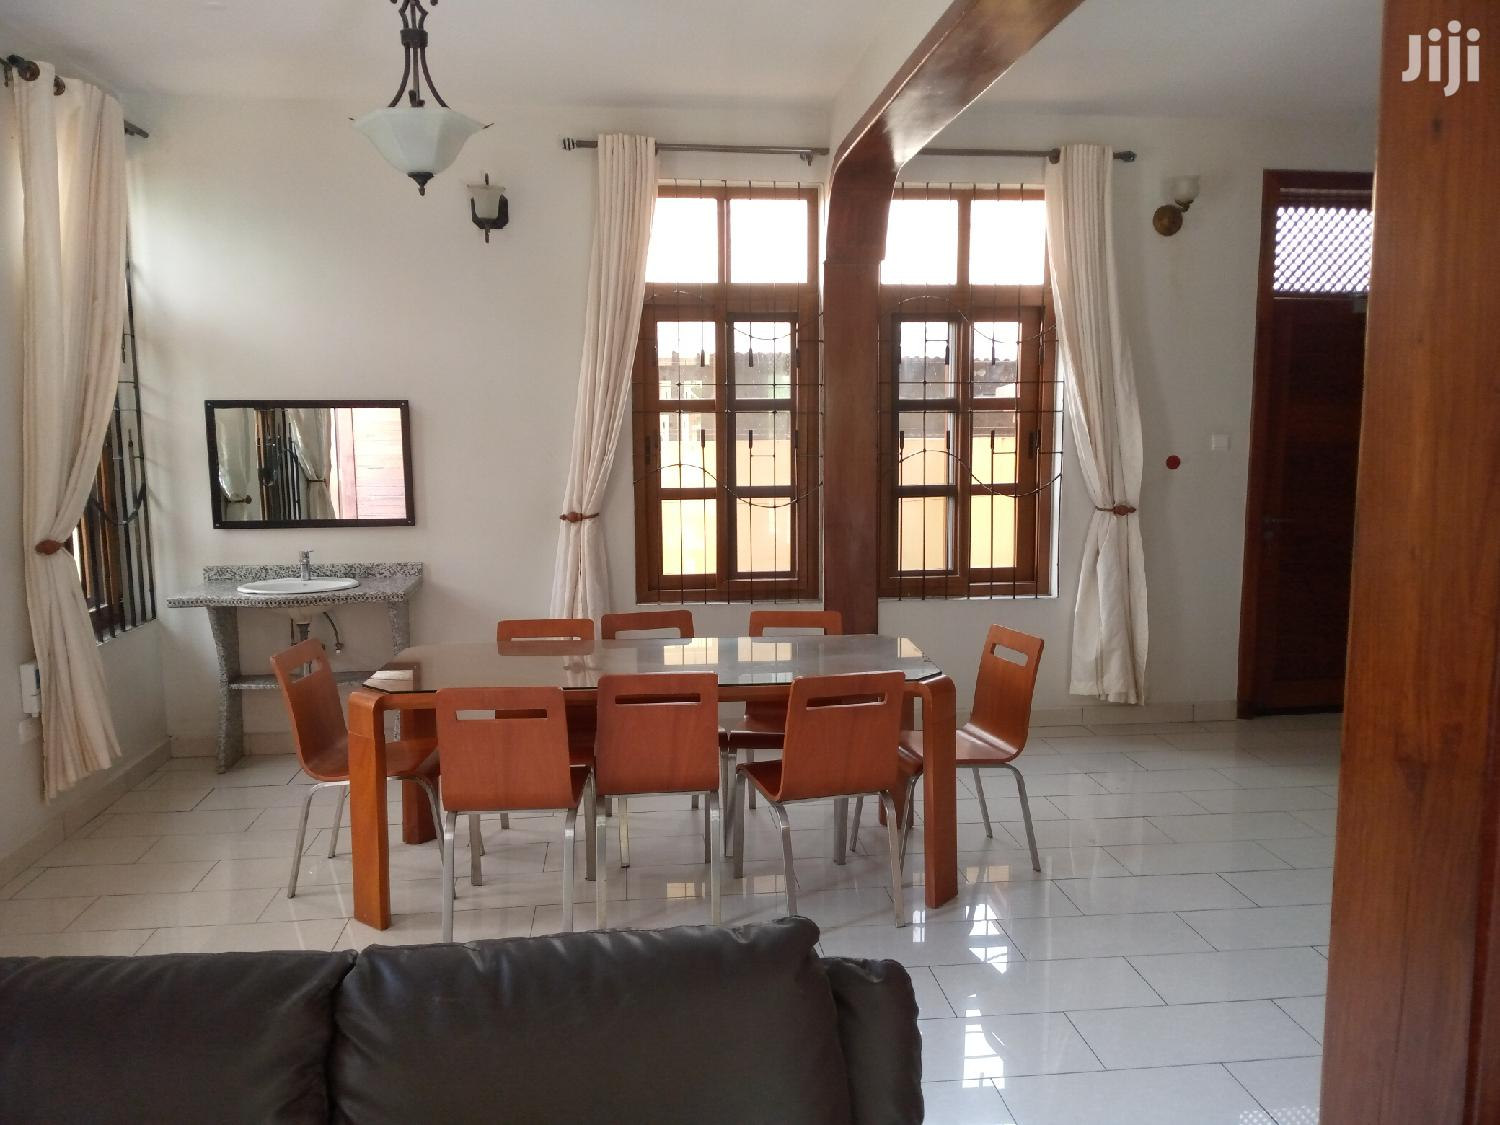 3 Bedrooms Villa At Mwenge For Rent | Houses & Apartments For Rent for sale in Kinondoni, Dar es Salaam, Tanzania